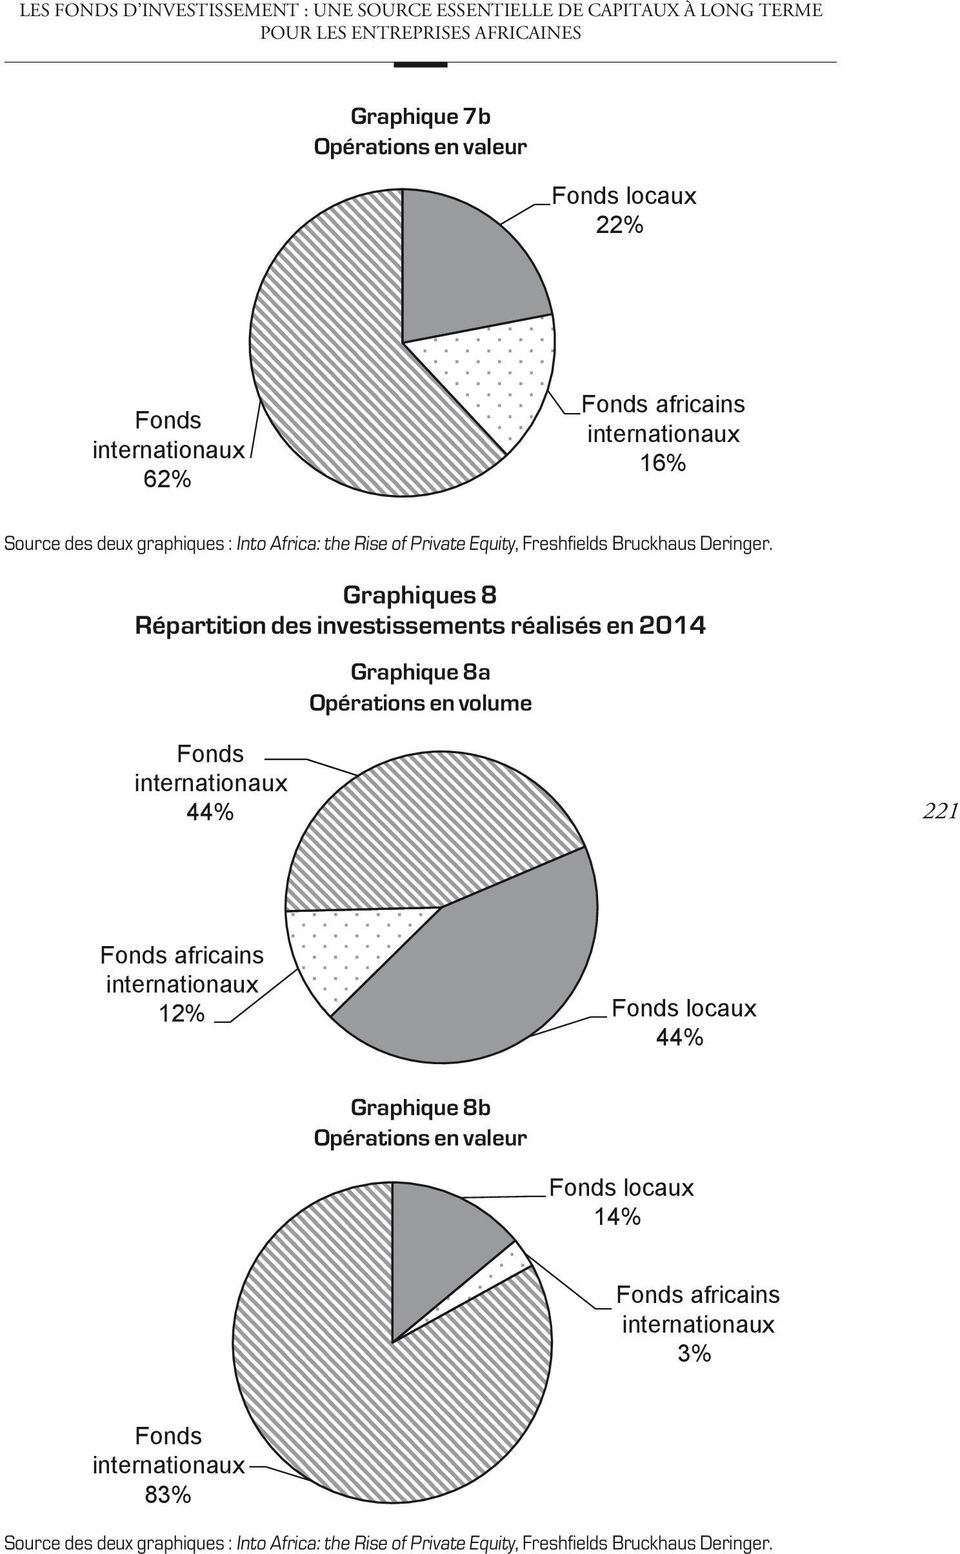 Graphiques 8 Répartition des investissements réalisés en 2014 Graphique 8a Opérations en volume Fonds internationaux 44% 221 Fonds africains internationaux 12% Fonds locaux 44%